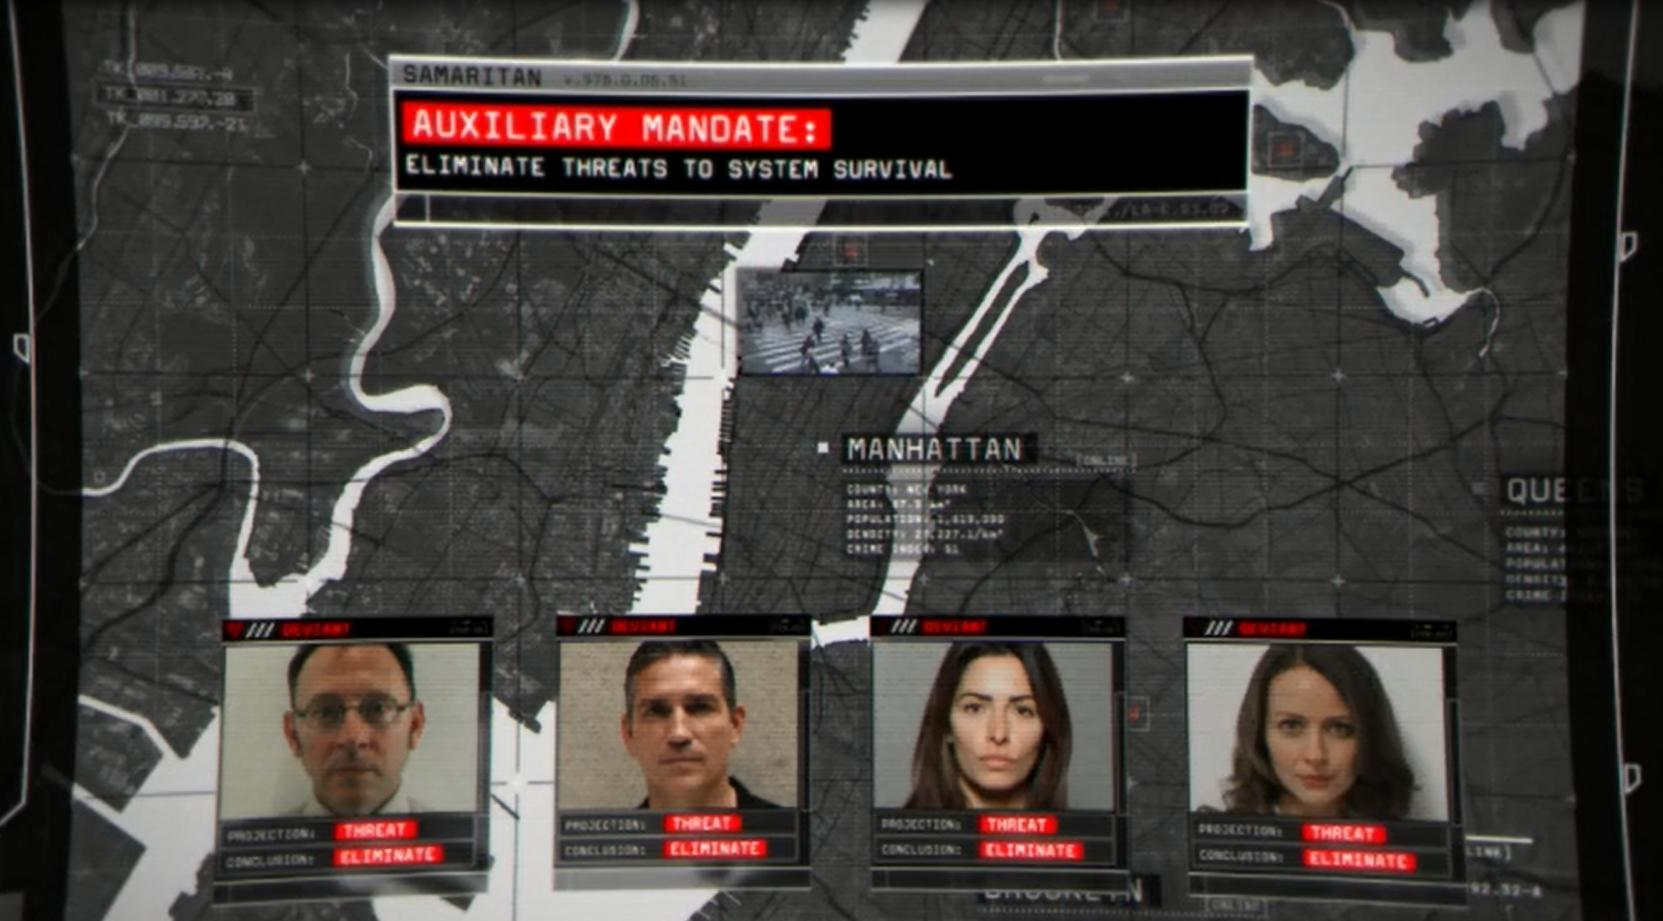 How Can You Be A Person Of Interest As Told By An Artificial Intelligence ?